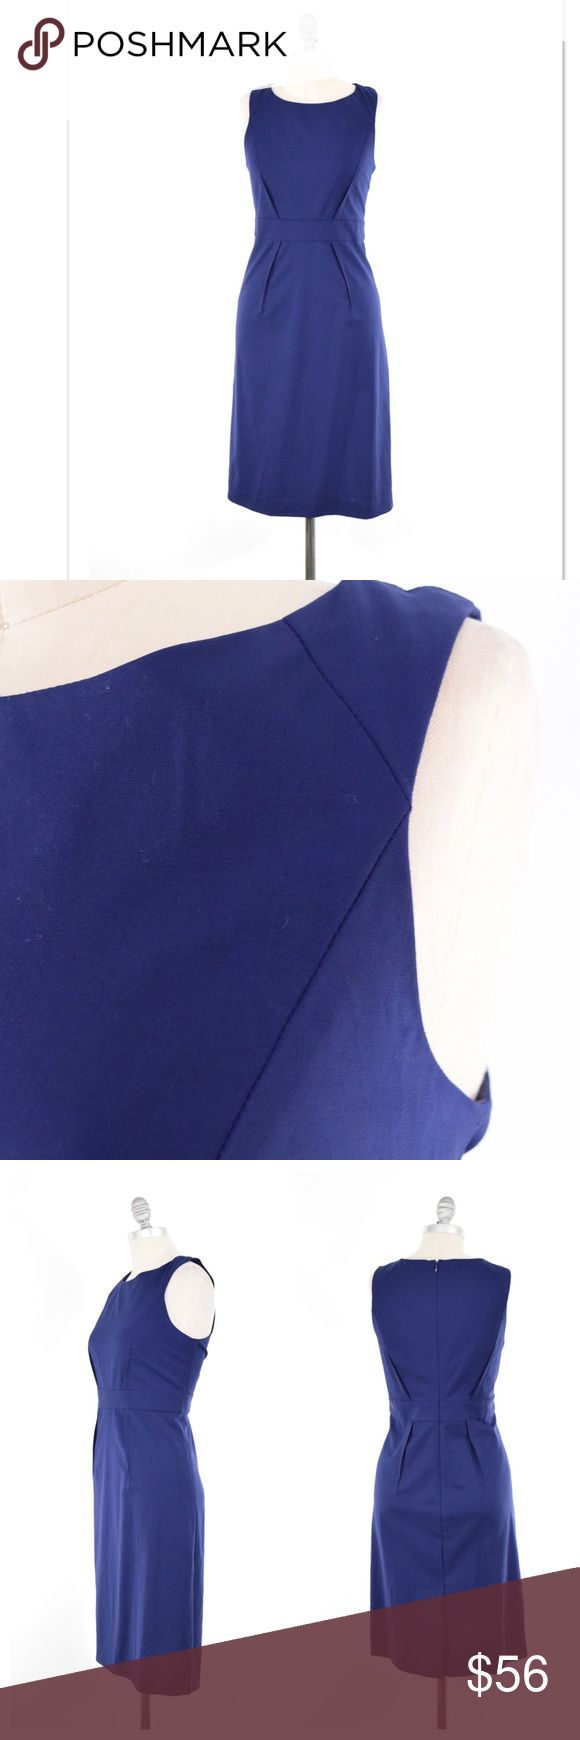 """Theory royal blue stretch wool sheath dress Figure-flattering sheath dress from Theory. Stretch wool suiting fabric; fully lined. Deep, blue/purple color. Jewel neckline, slim waistband, pencil skirt. Hits at the knee. Reversed dart detail. Size 12, approximate L/XL. Length from shoulder: 39"""" Bust: 36"""" Waist: 32"""" Hip: 40"""" Theory Dresses"""